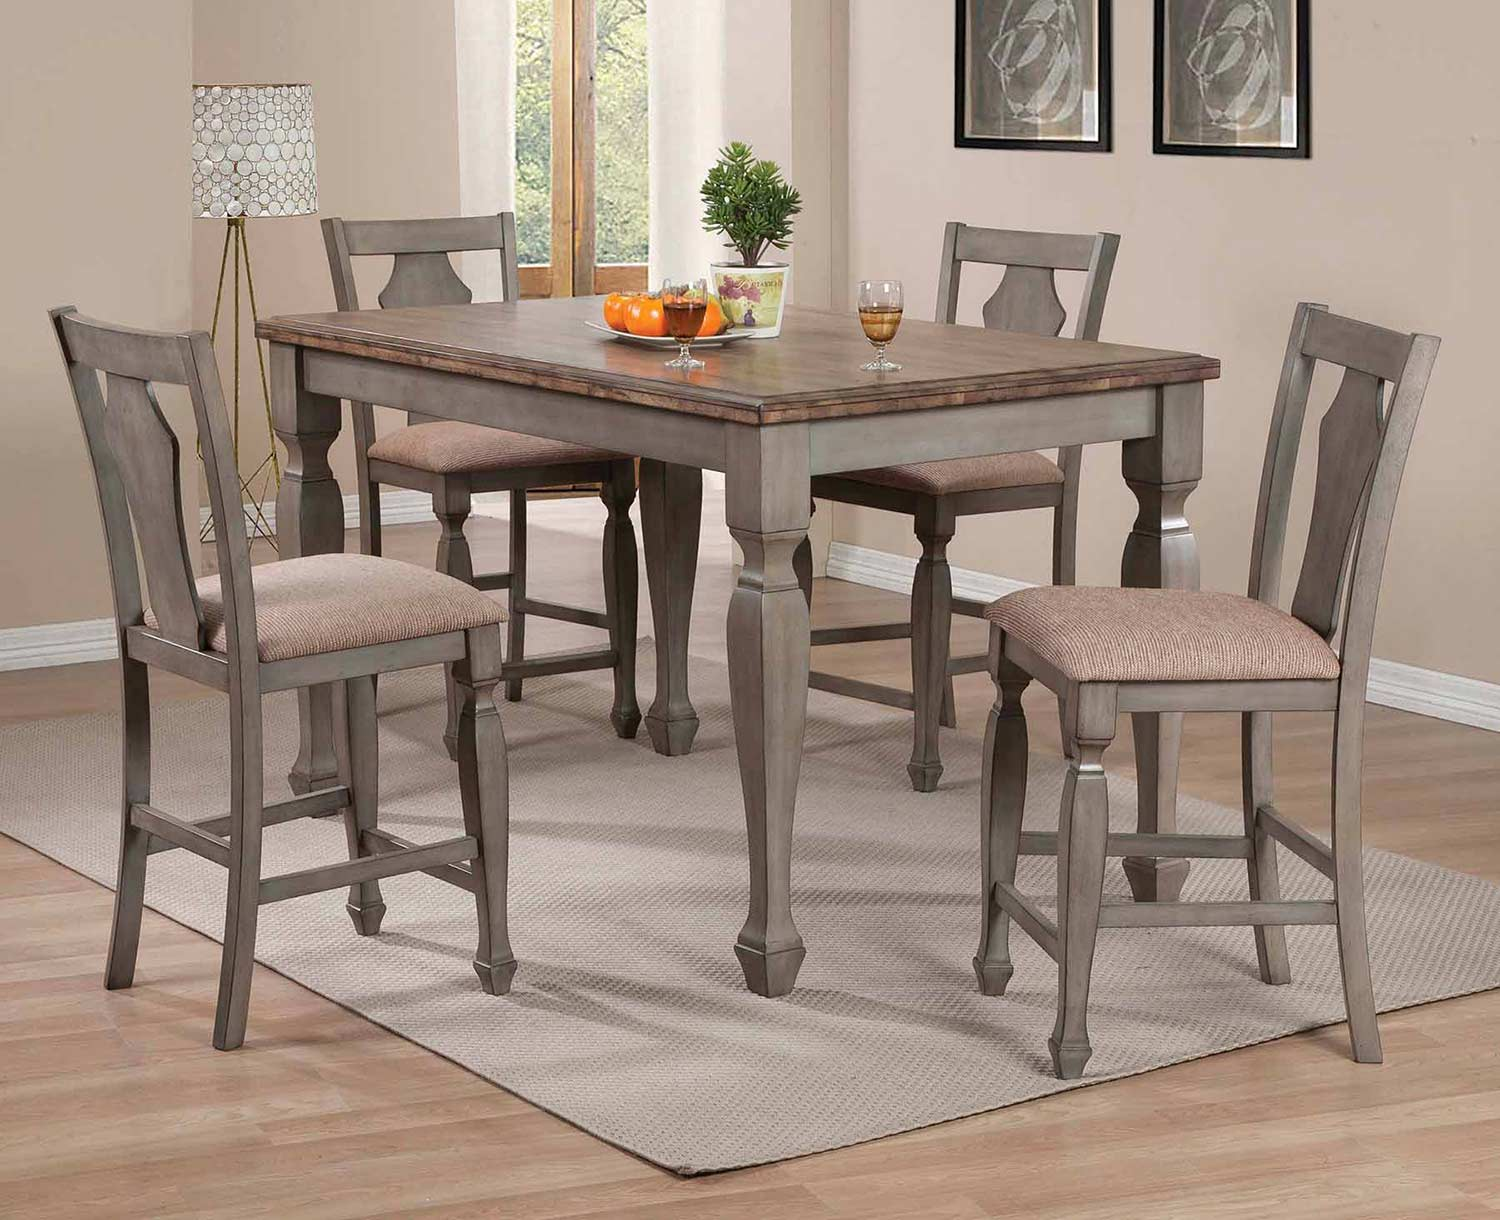 Coaster Riverbend Counter Height Dining Set - Wheat/Antique Grey